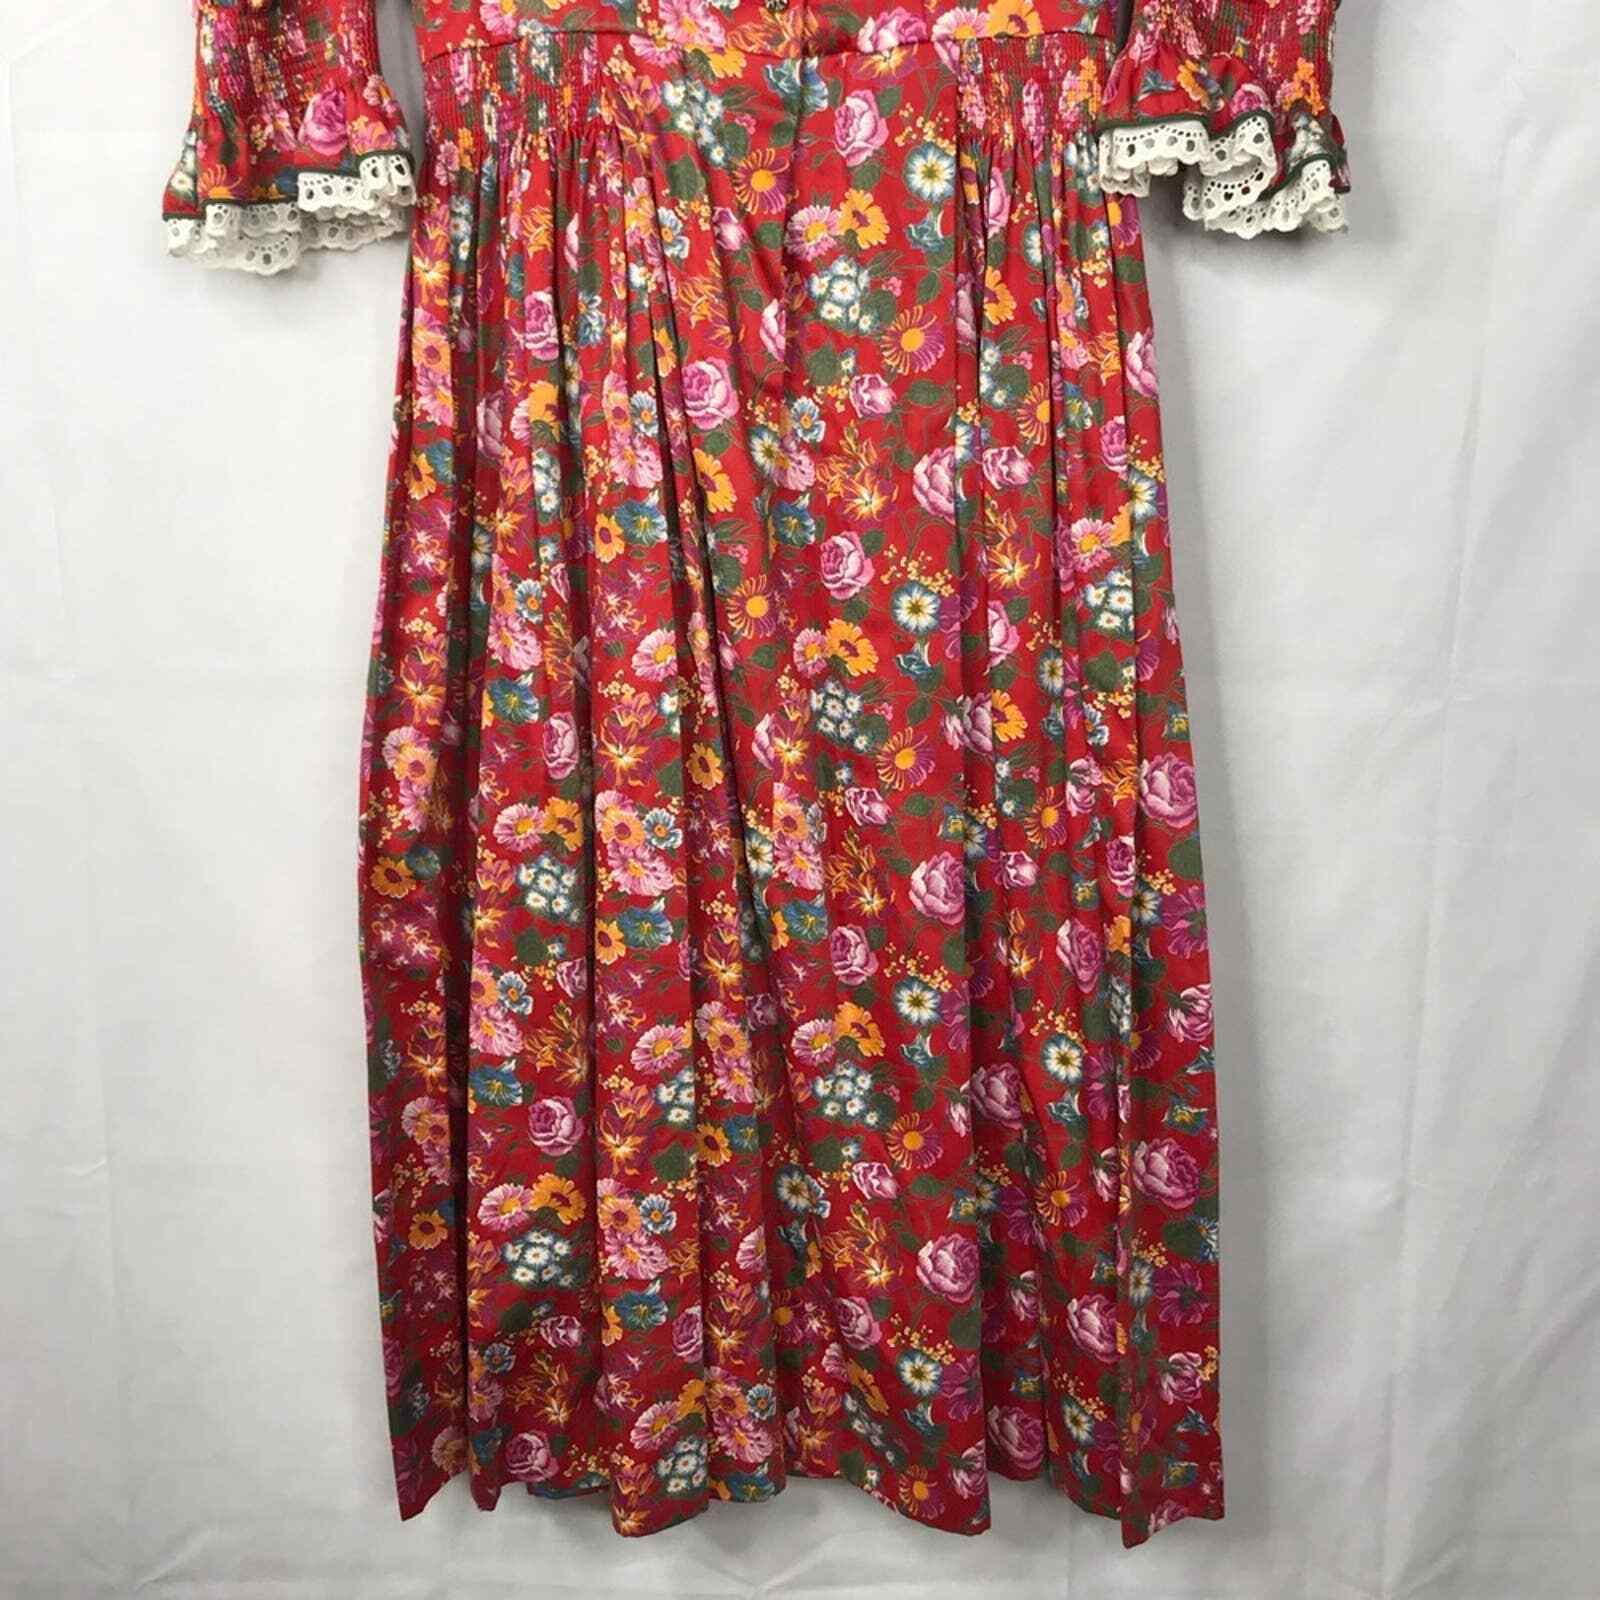 60s Style cottagecore floral prairie pleated dress - image 6